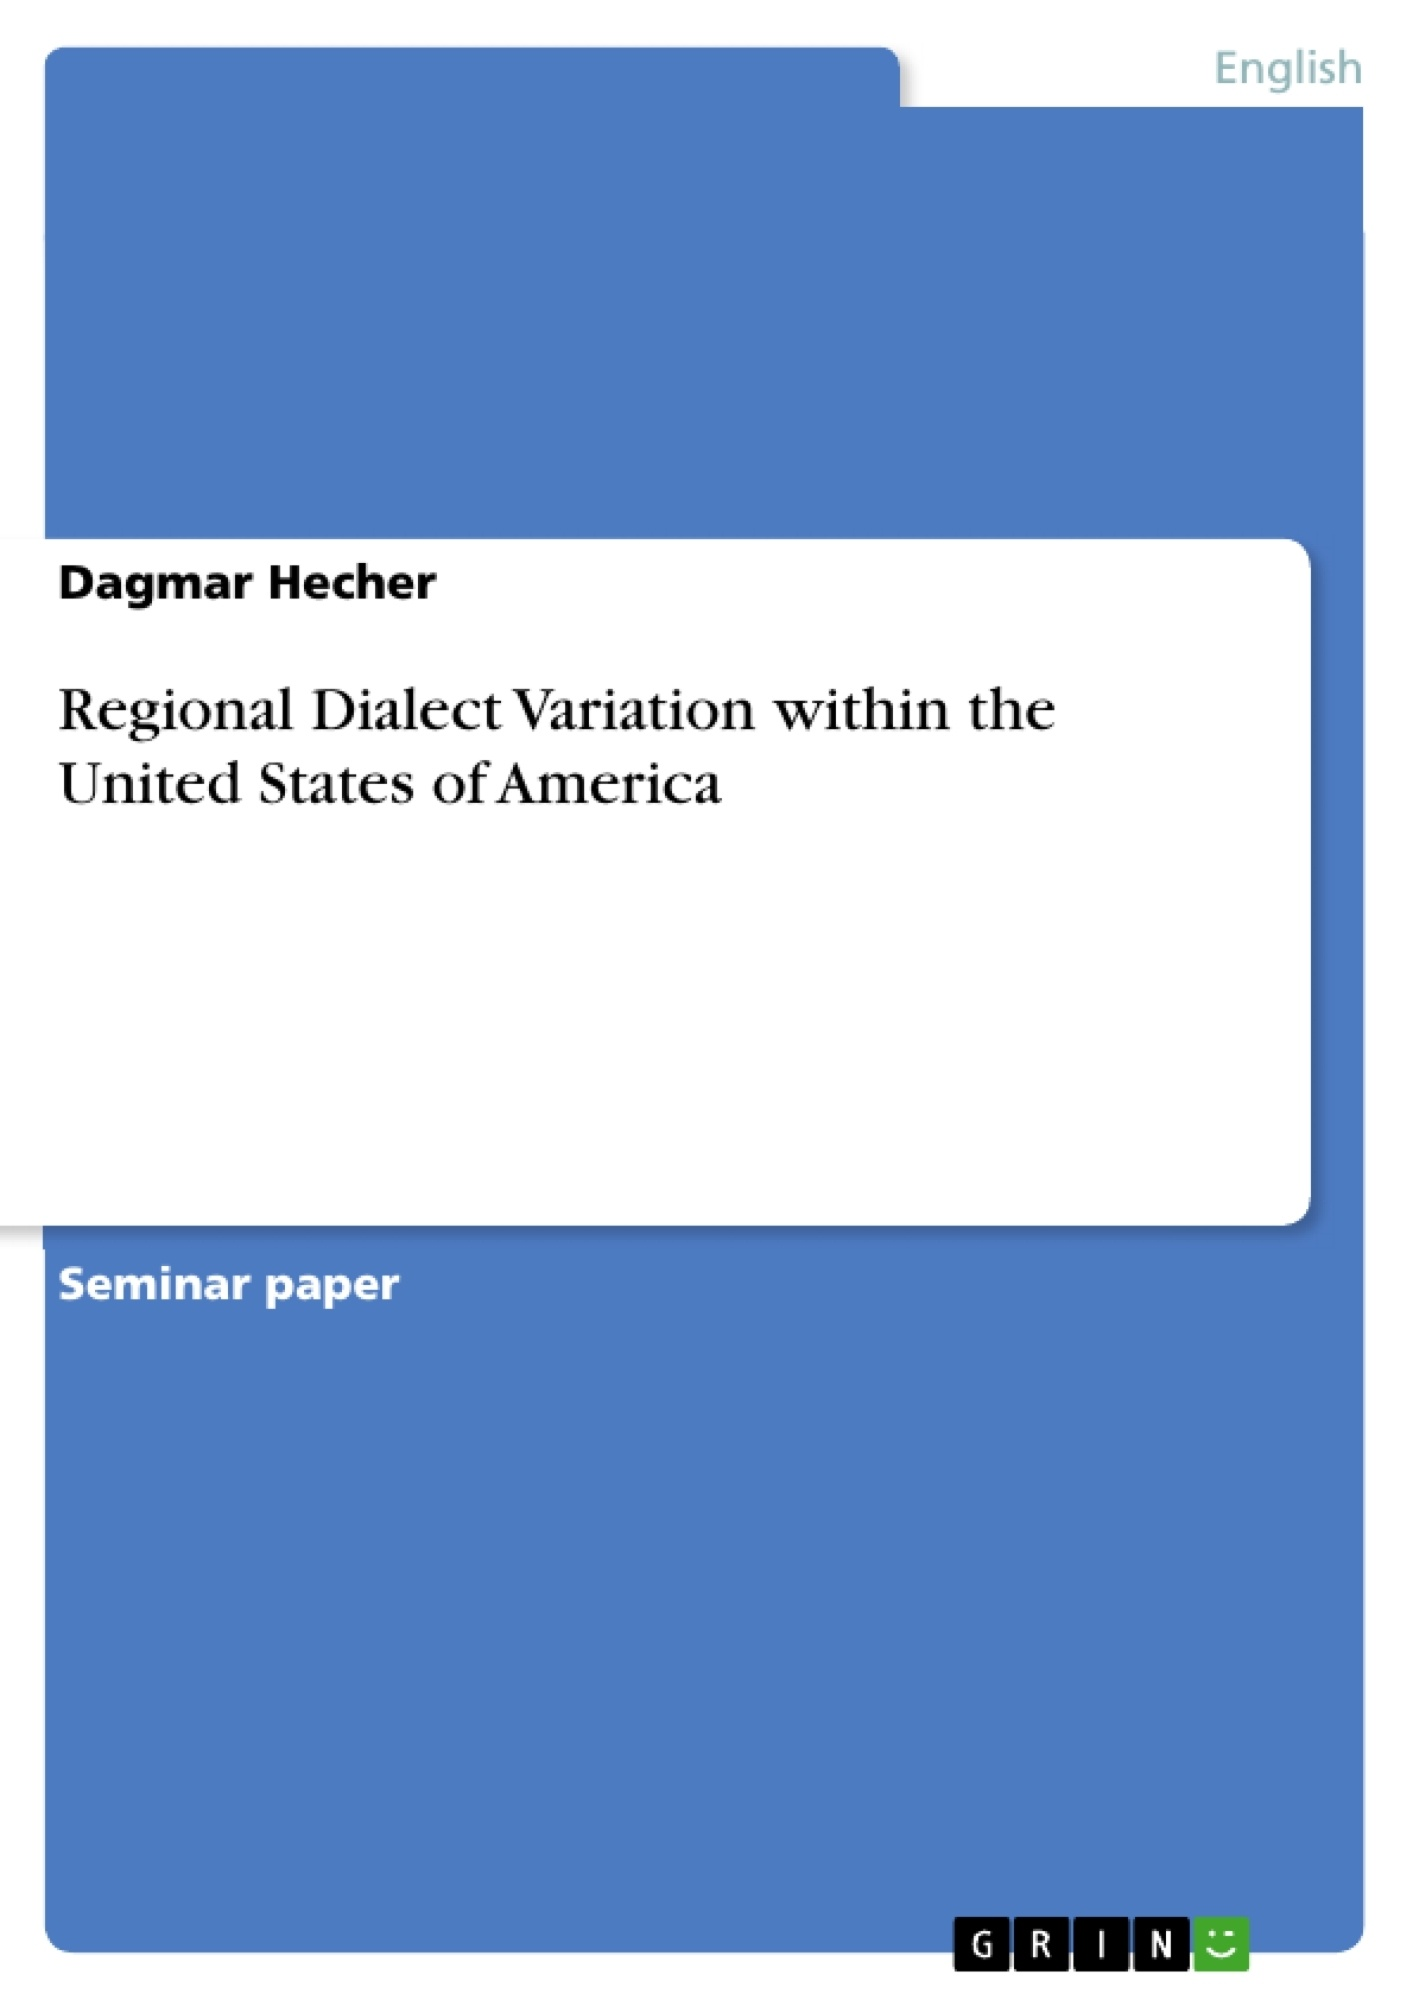 Title: Regional Dialect Variation within the United States of America